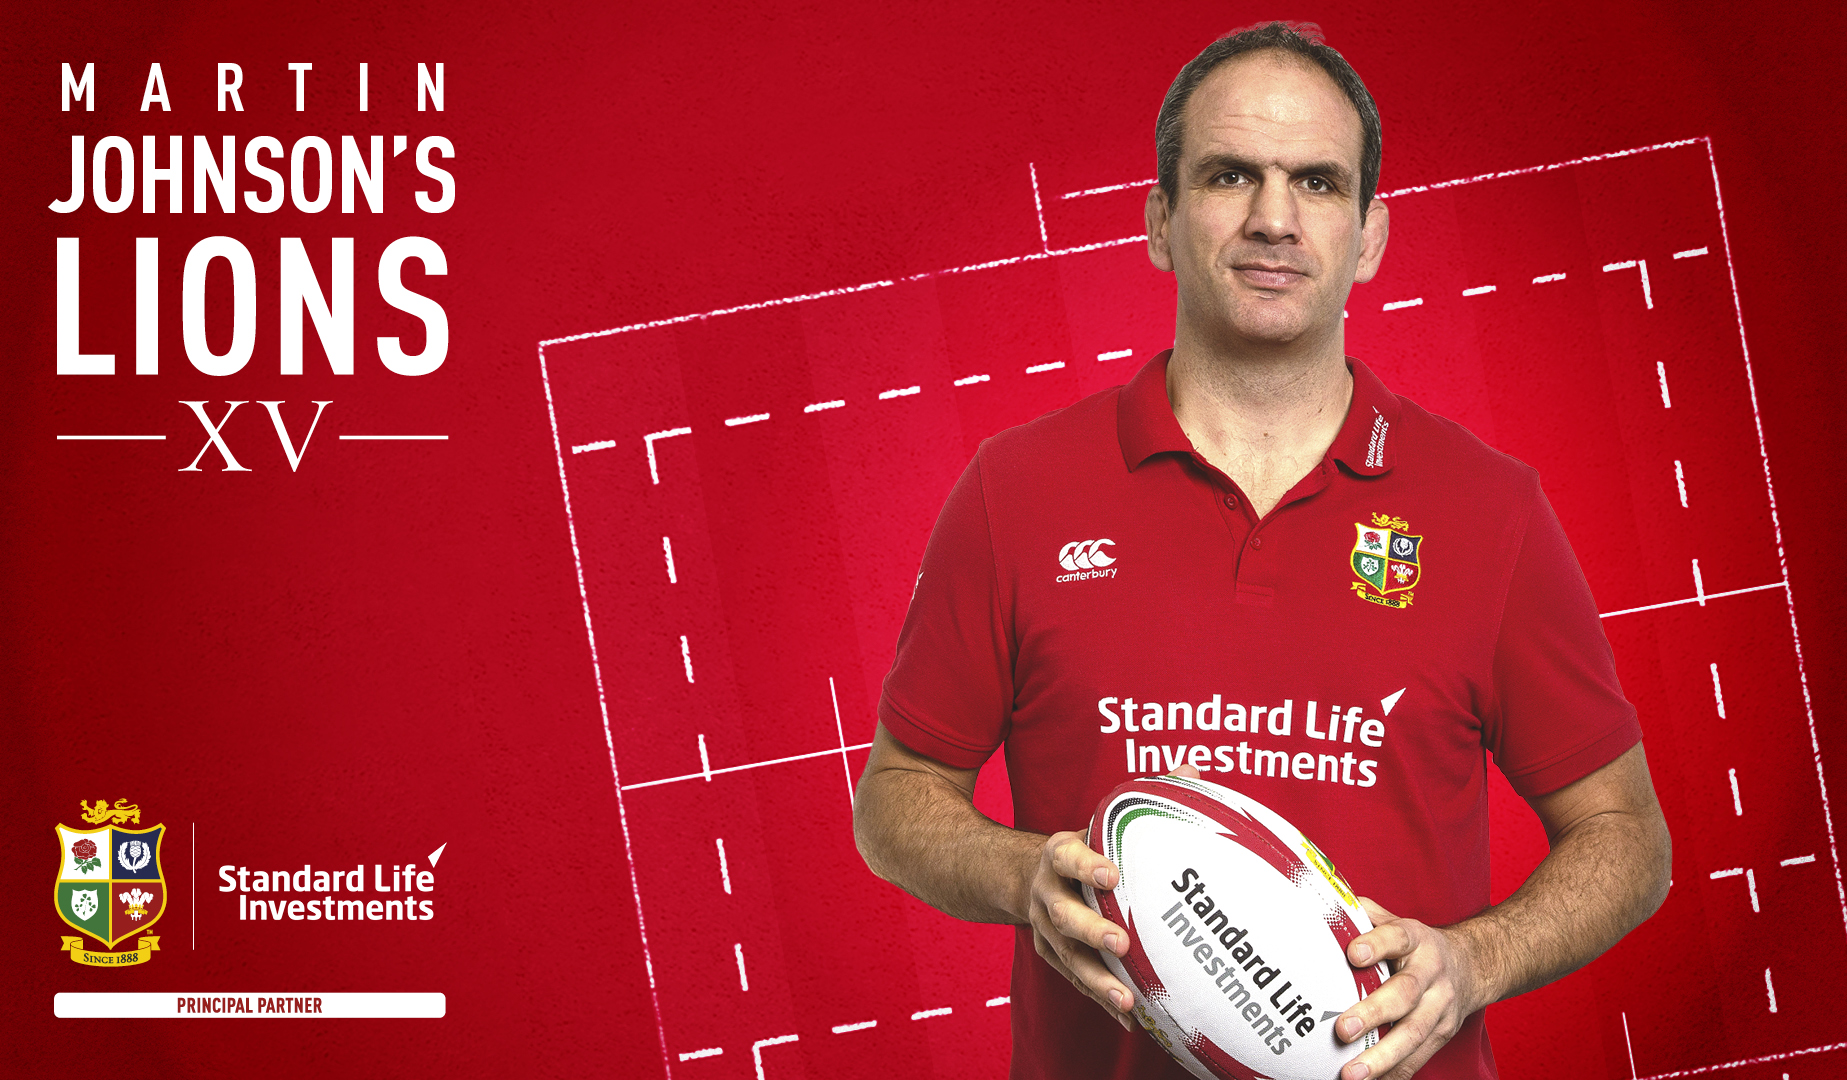 Johnson to select Lions XV based on Round Five action